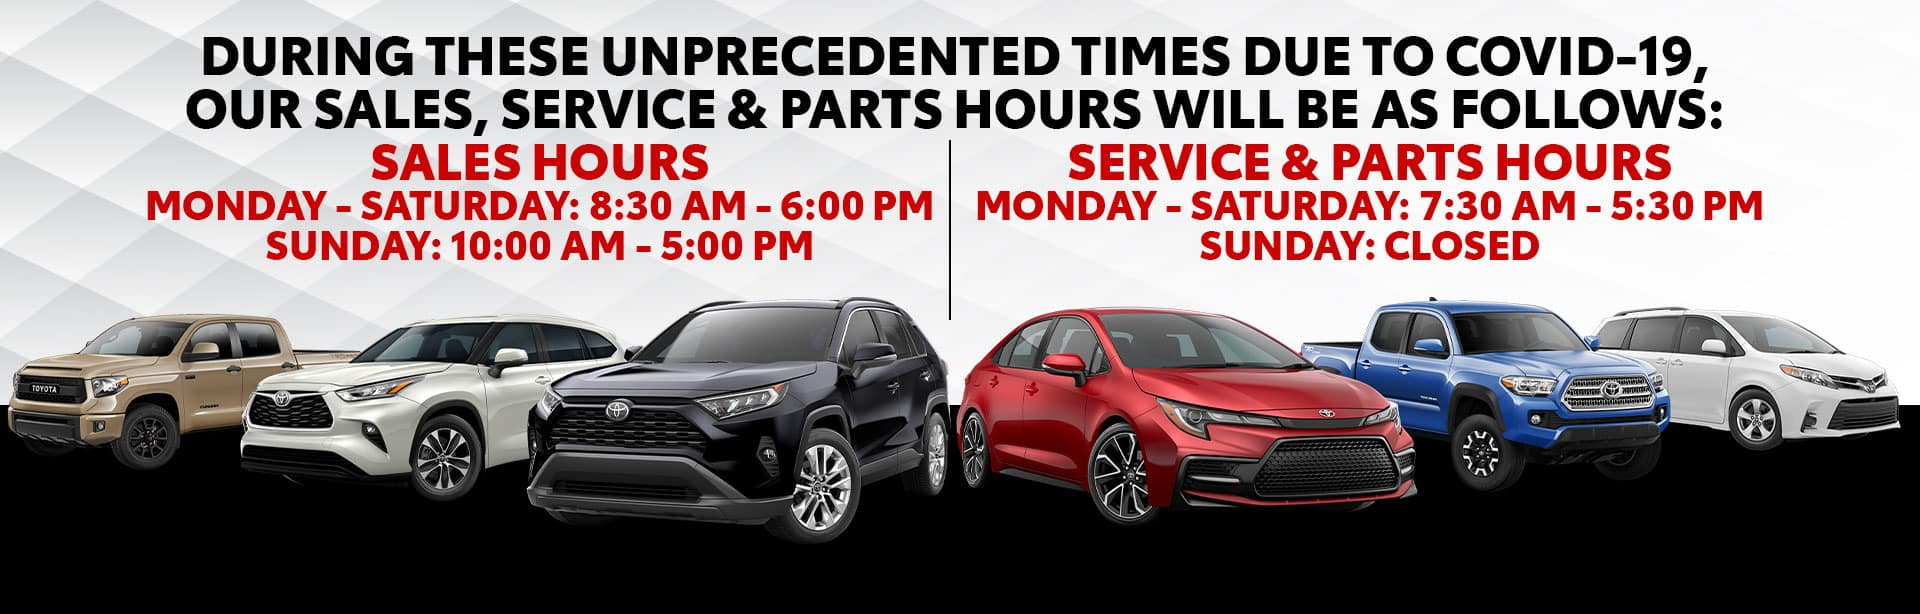 Temporary Sales, Service & Parts Hours at Bev Smith Toyota